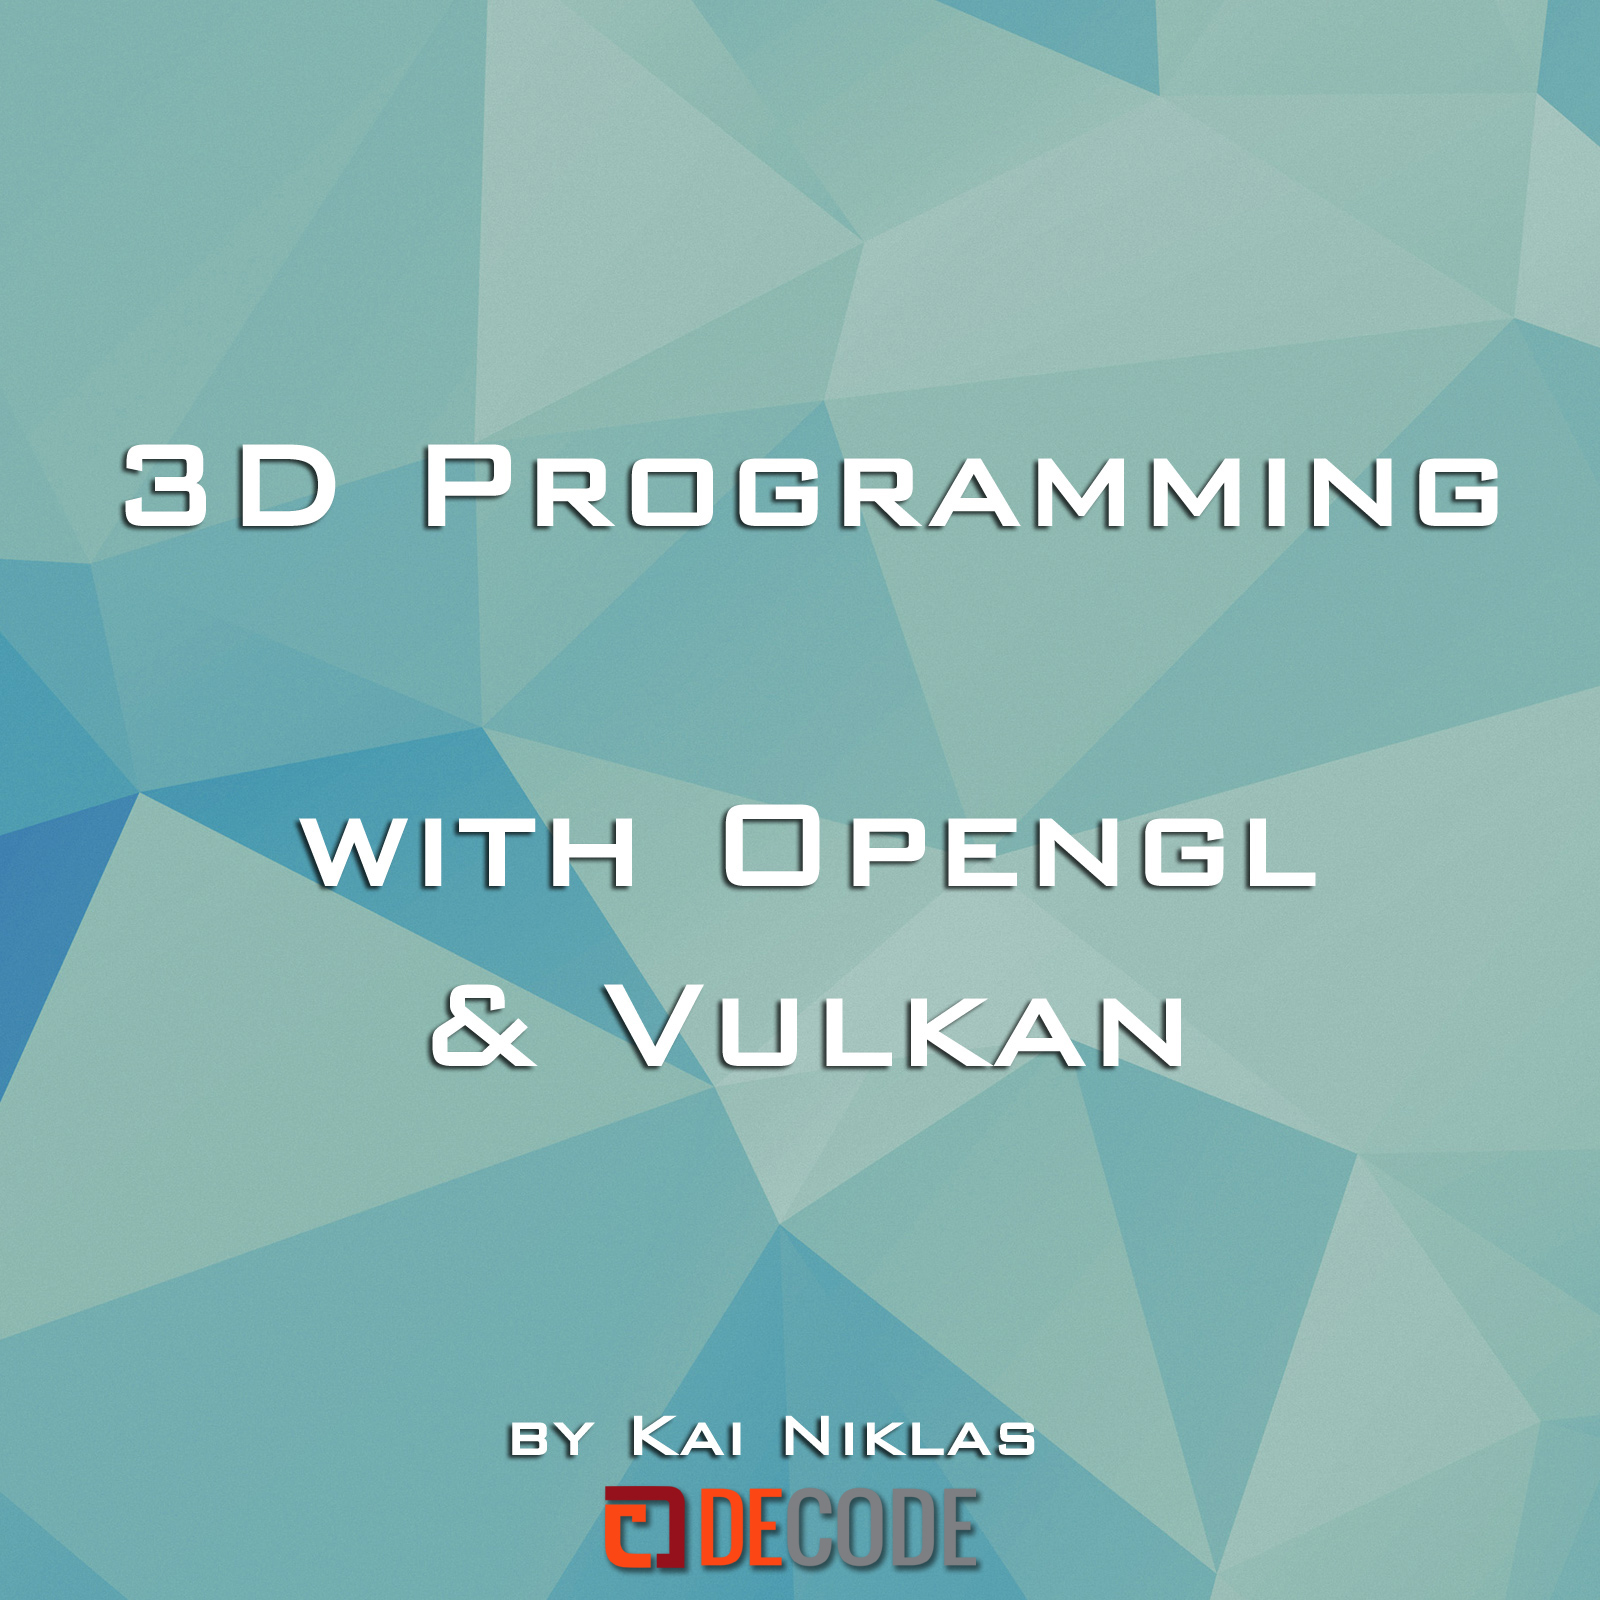 3d Programming with OpenGL & Vulkan